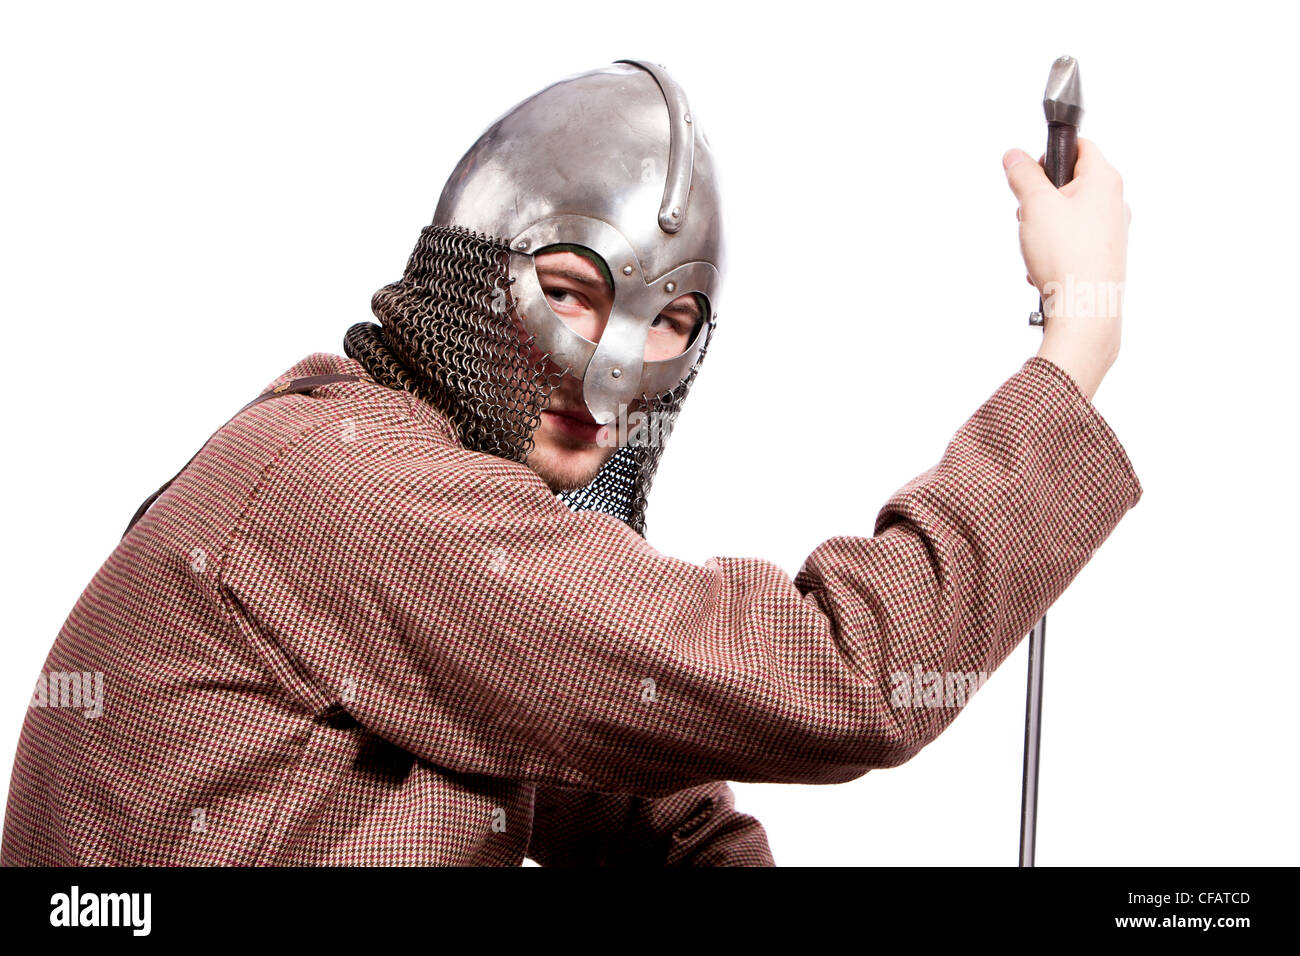 Young man in Viking armor - Stock Image